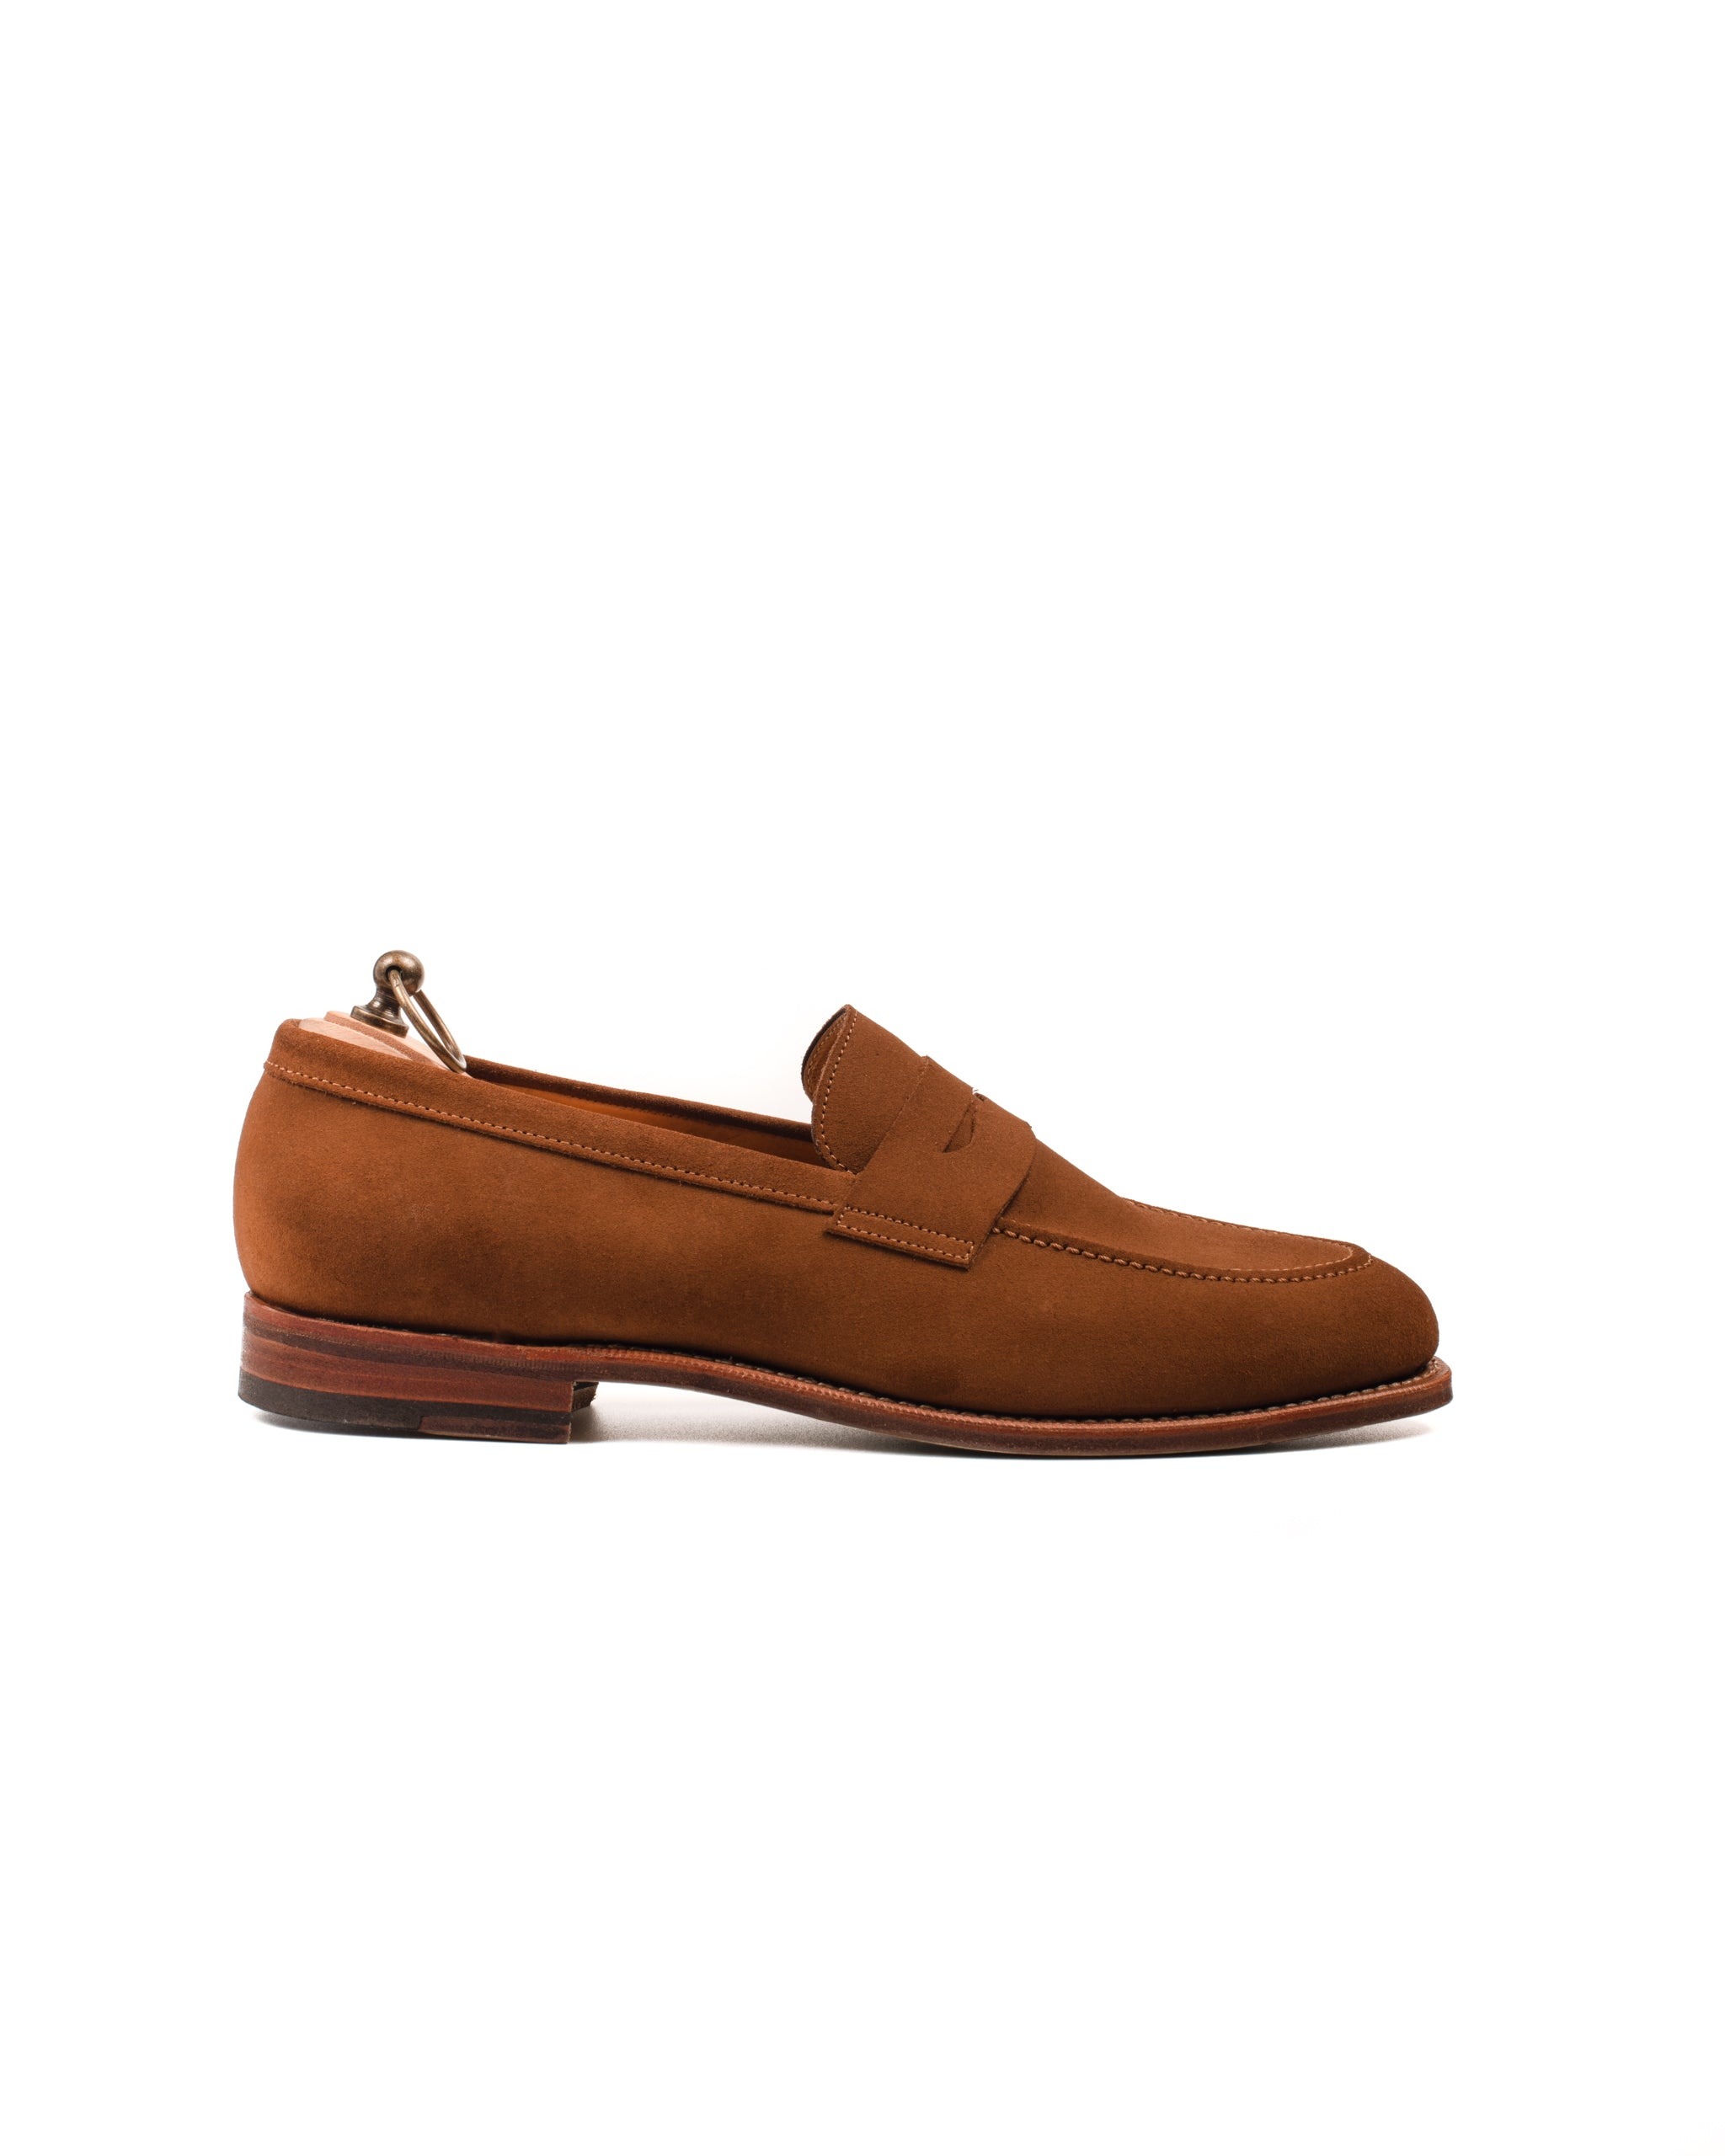 Penny Loafer // English Suede // Snuff // Rendenbach Ledersohle